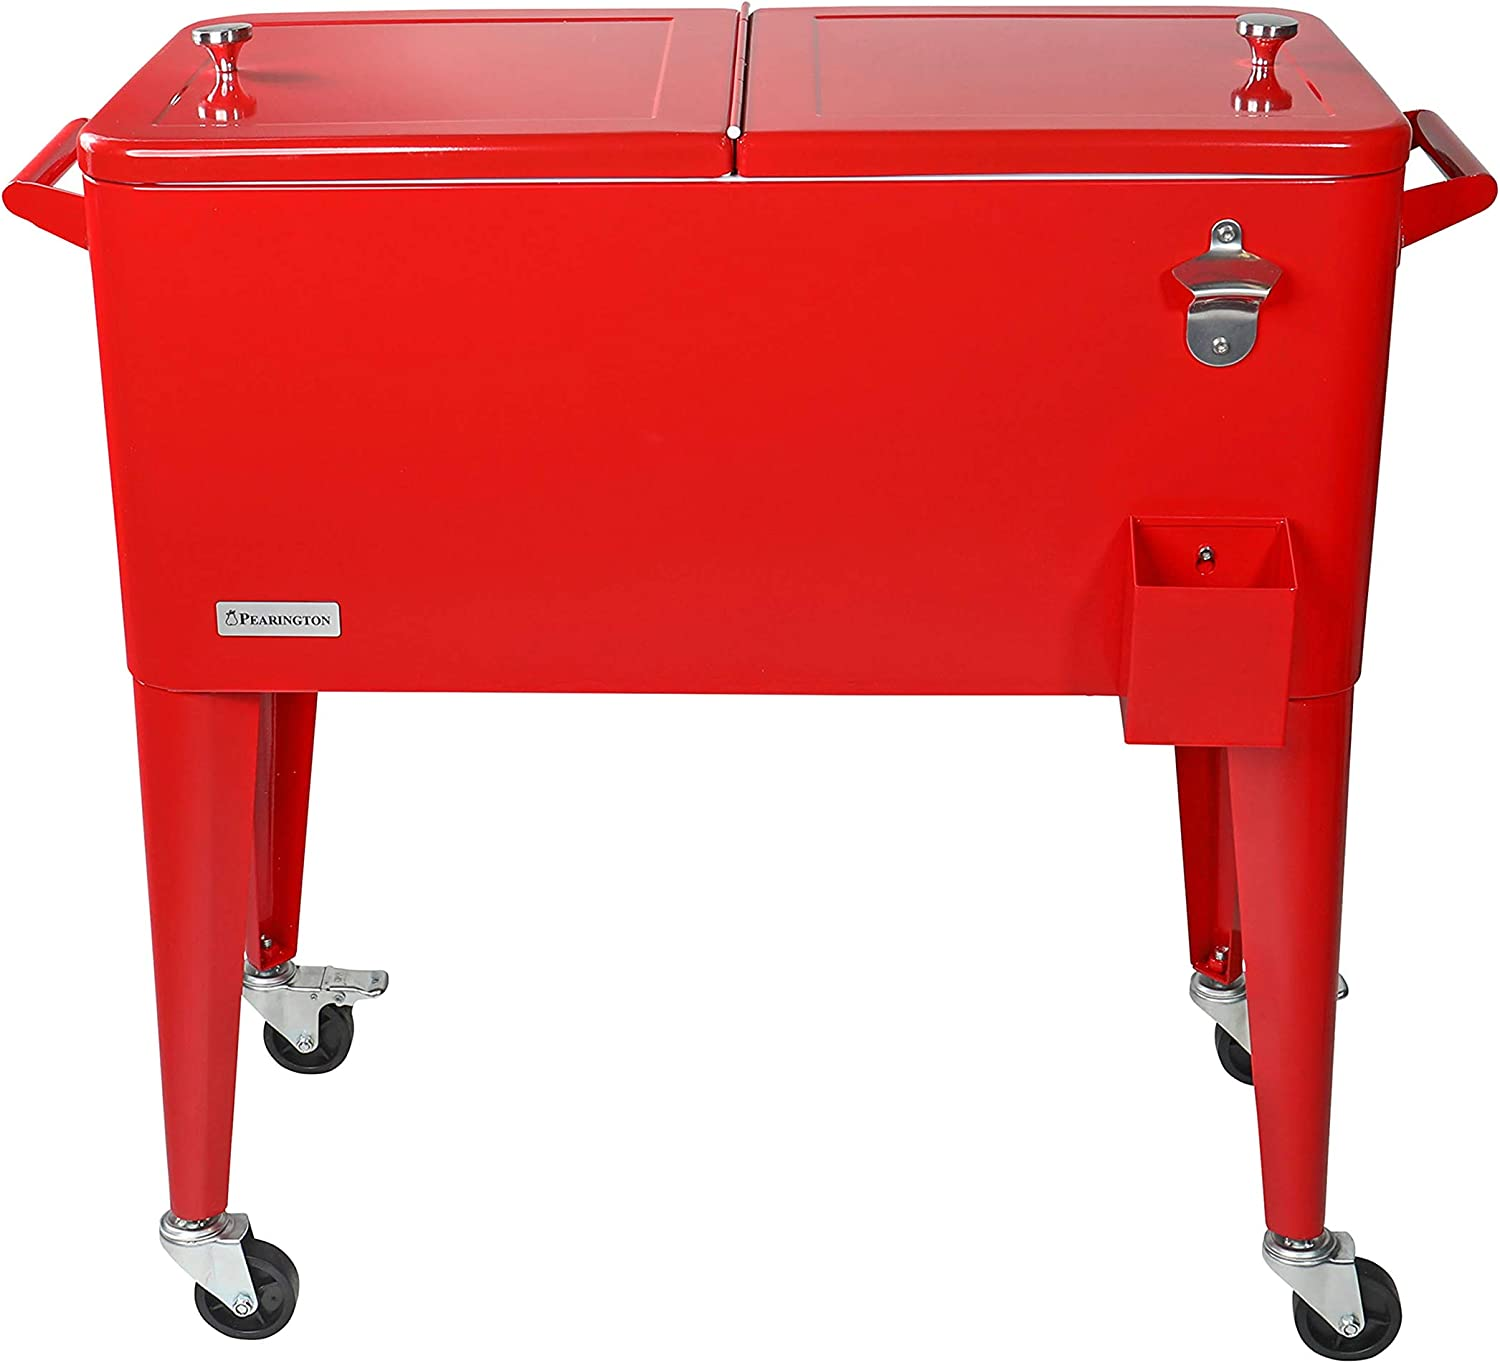 Pearington PEAR-80QT-35883 Outdoor Red Cooler Ranking TOP12 Colorado Springs Mall